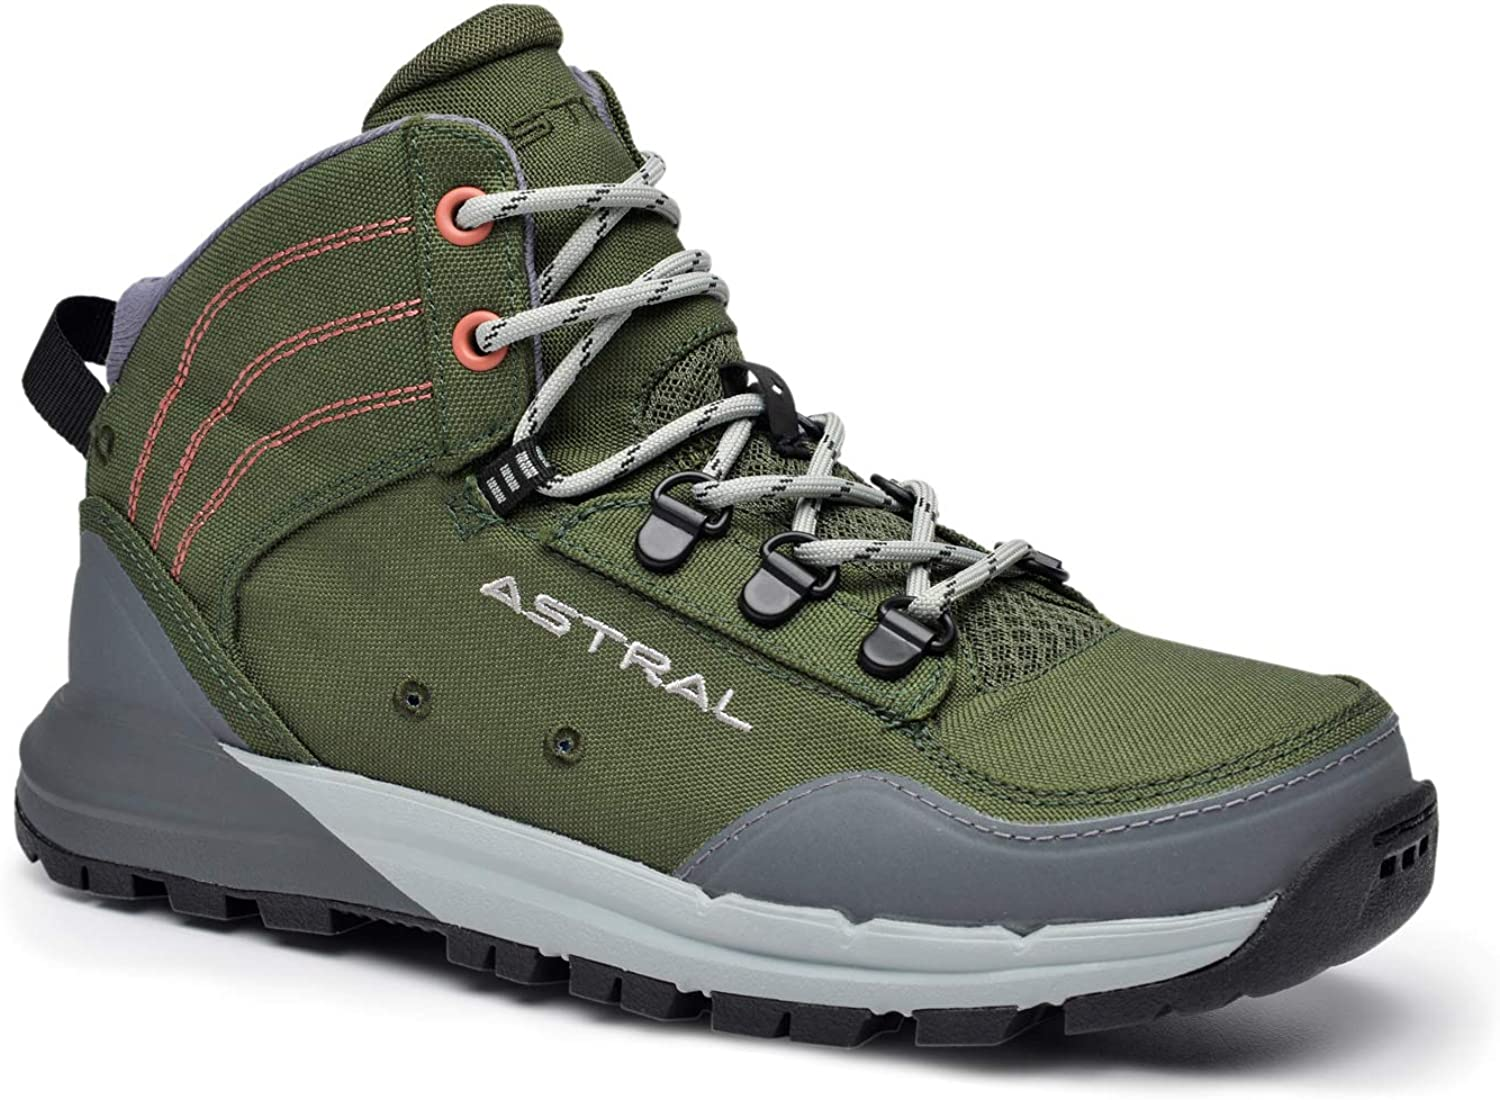 Astral Women s TR1 Merge Minimalist Hiking Boots, Quick Drying and Lightweight, Made for Camping and Backpacking